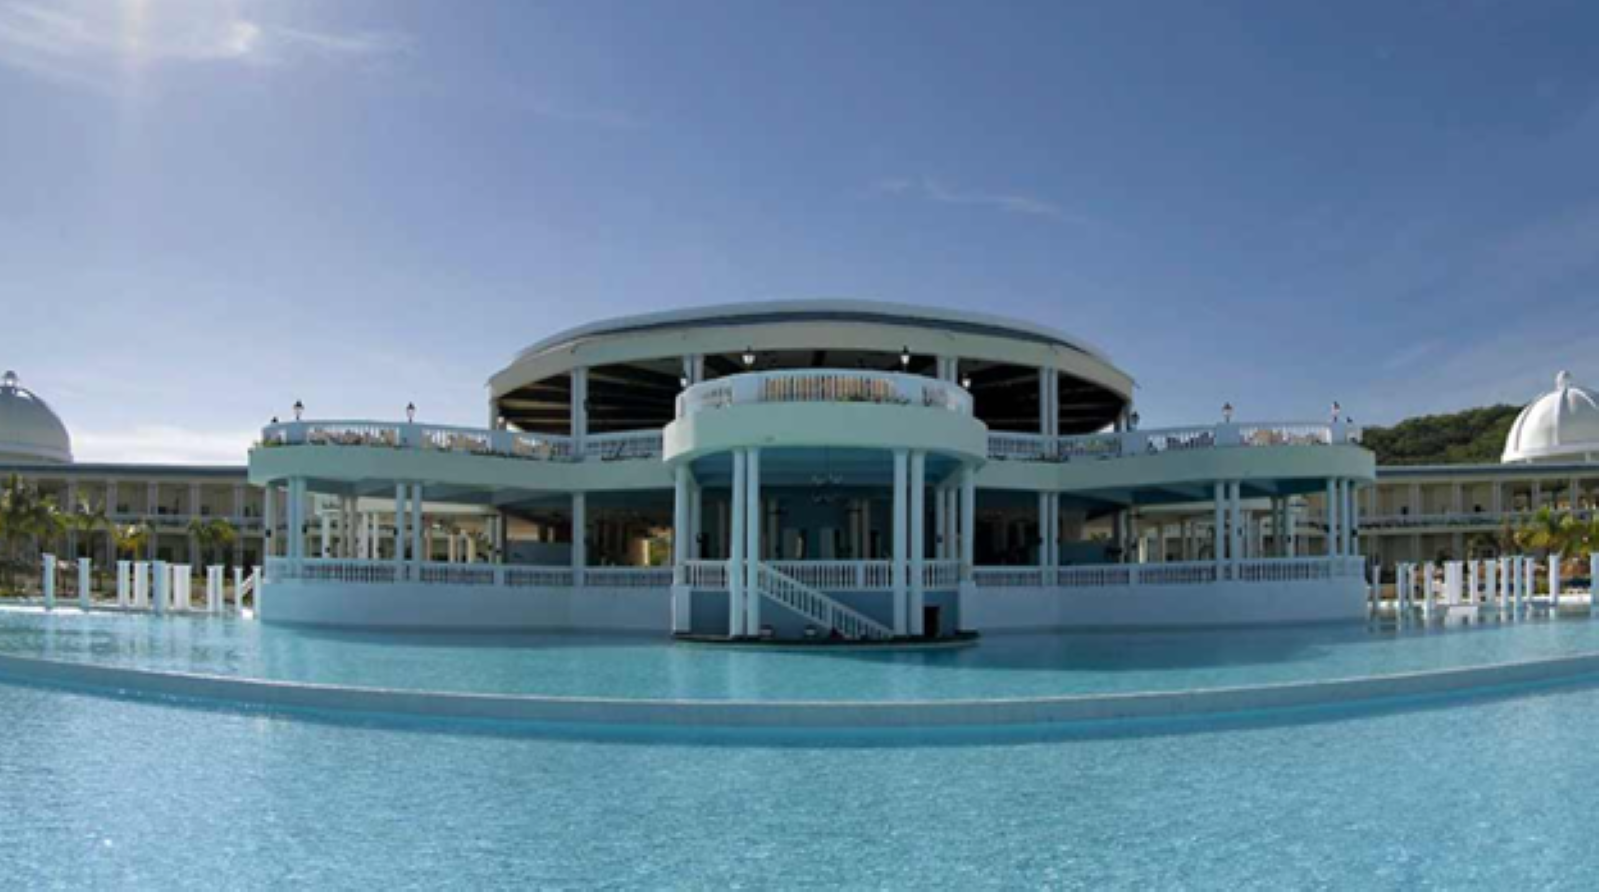 Large wading pool in front of a large rounded two story balcony with outdoor seating